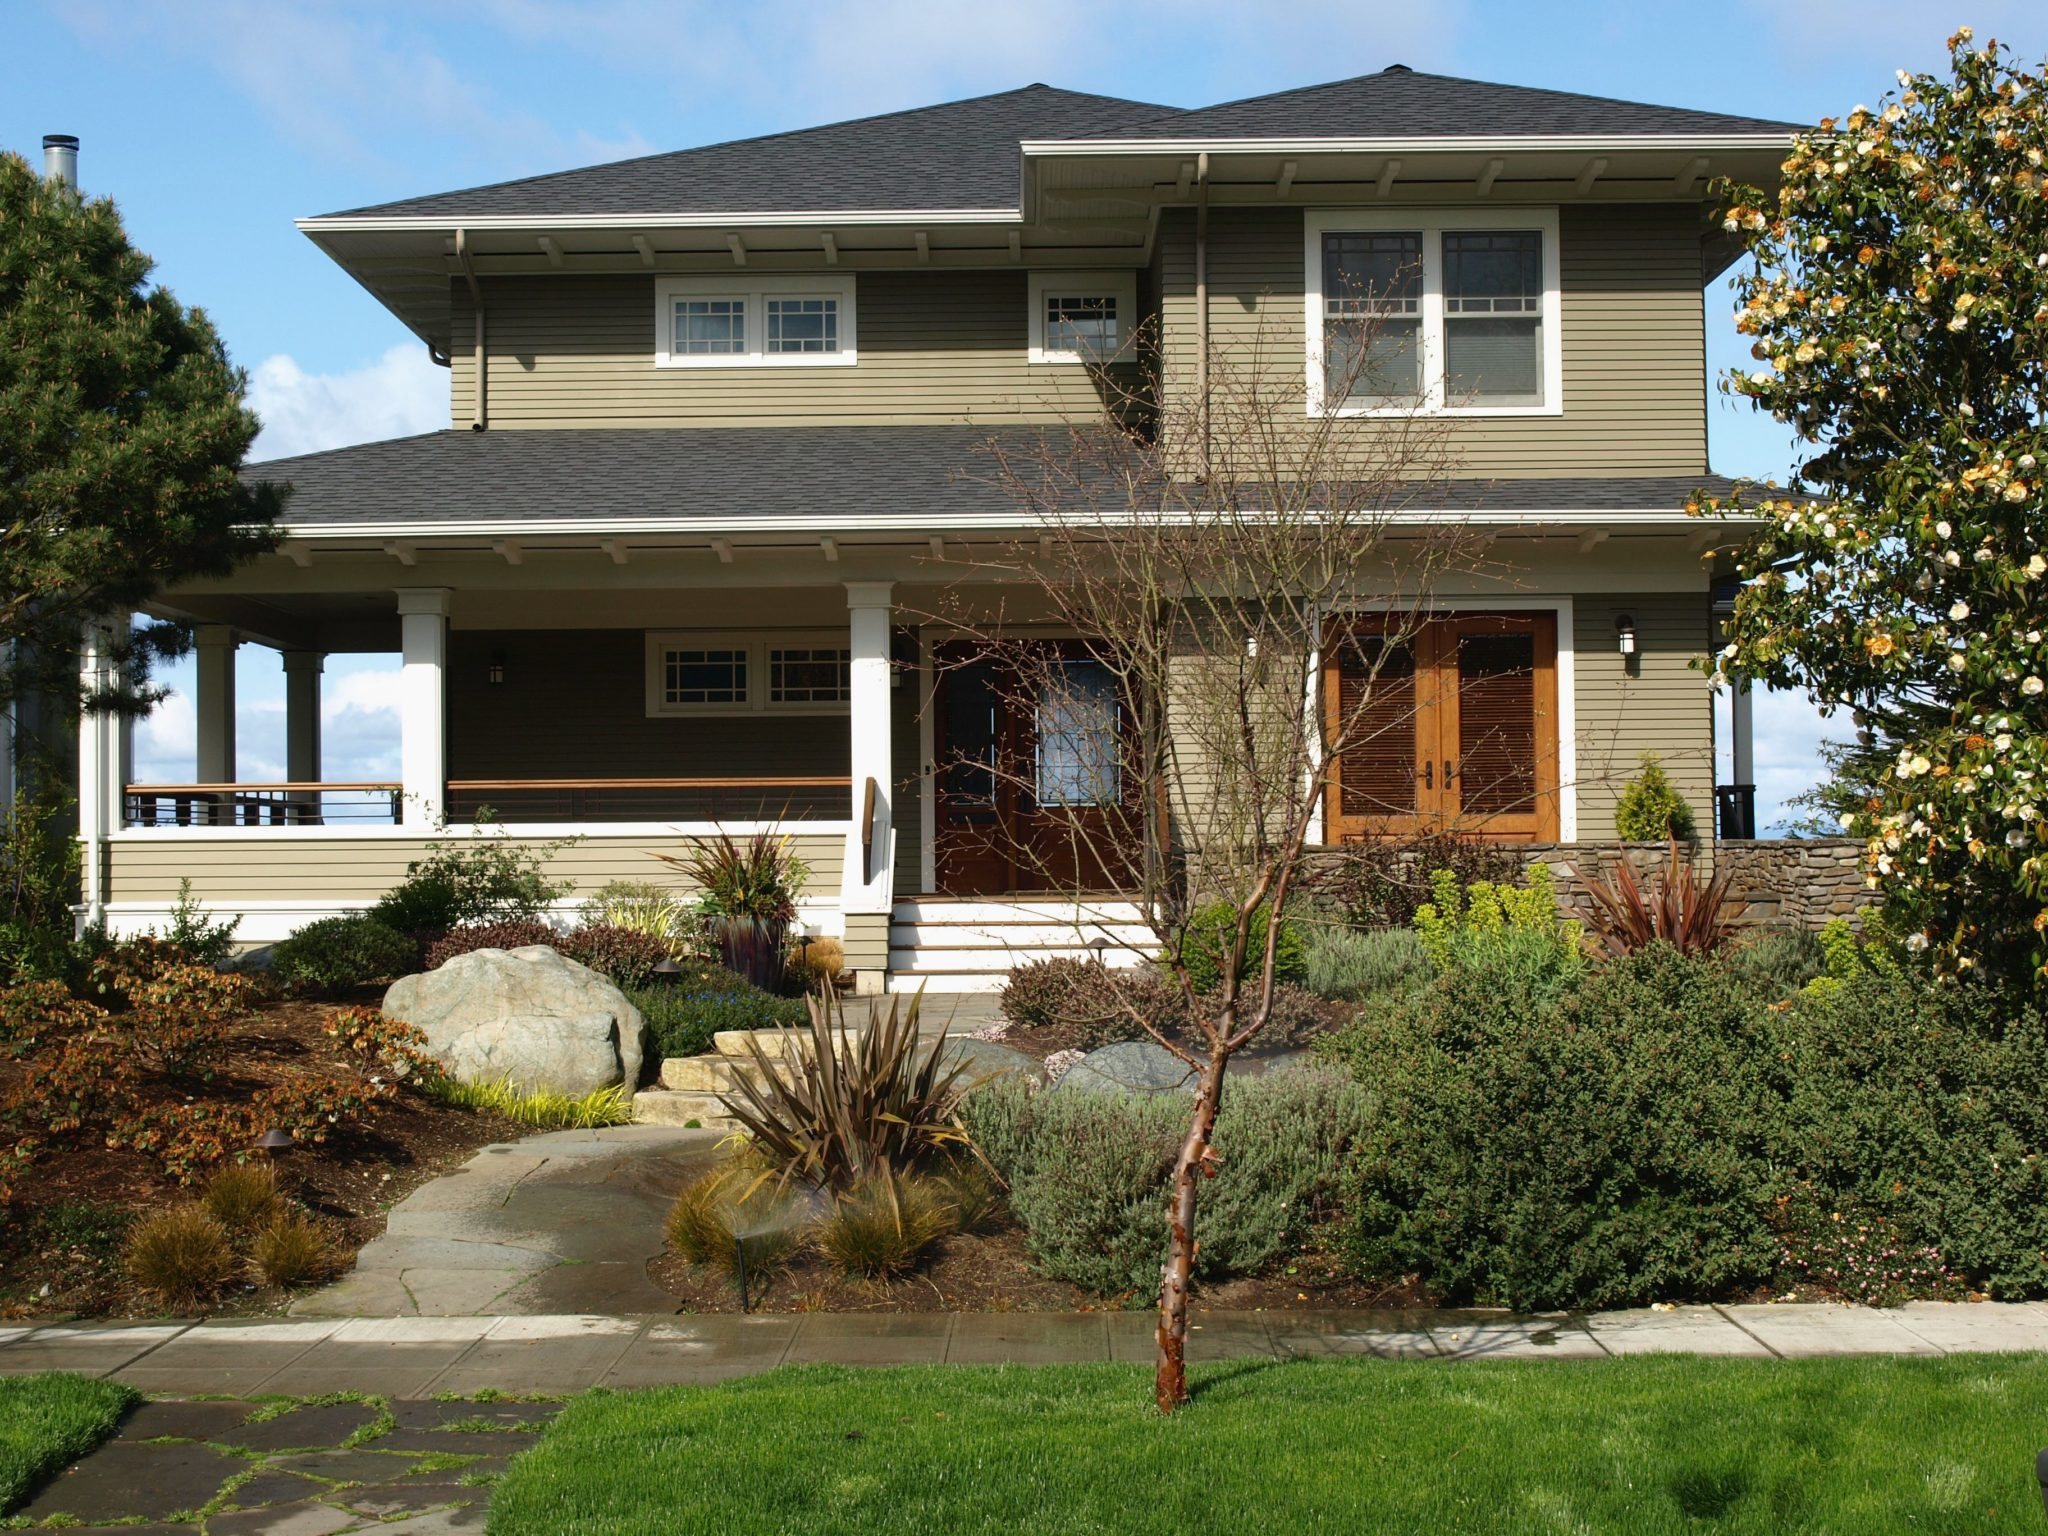 This New Home Was Inspired By The Stately Old Homes On Queen Anne In  Seattle.